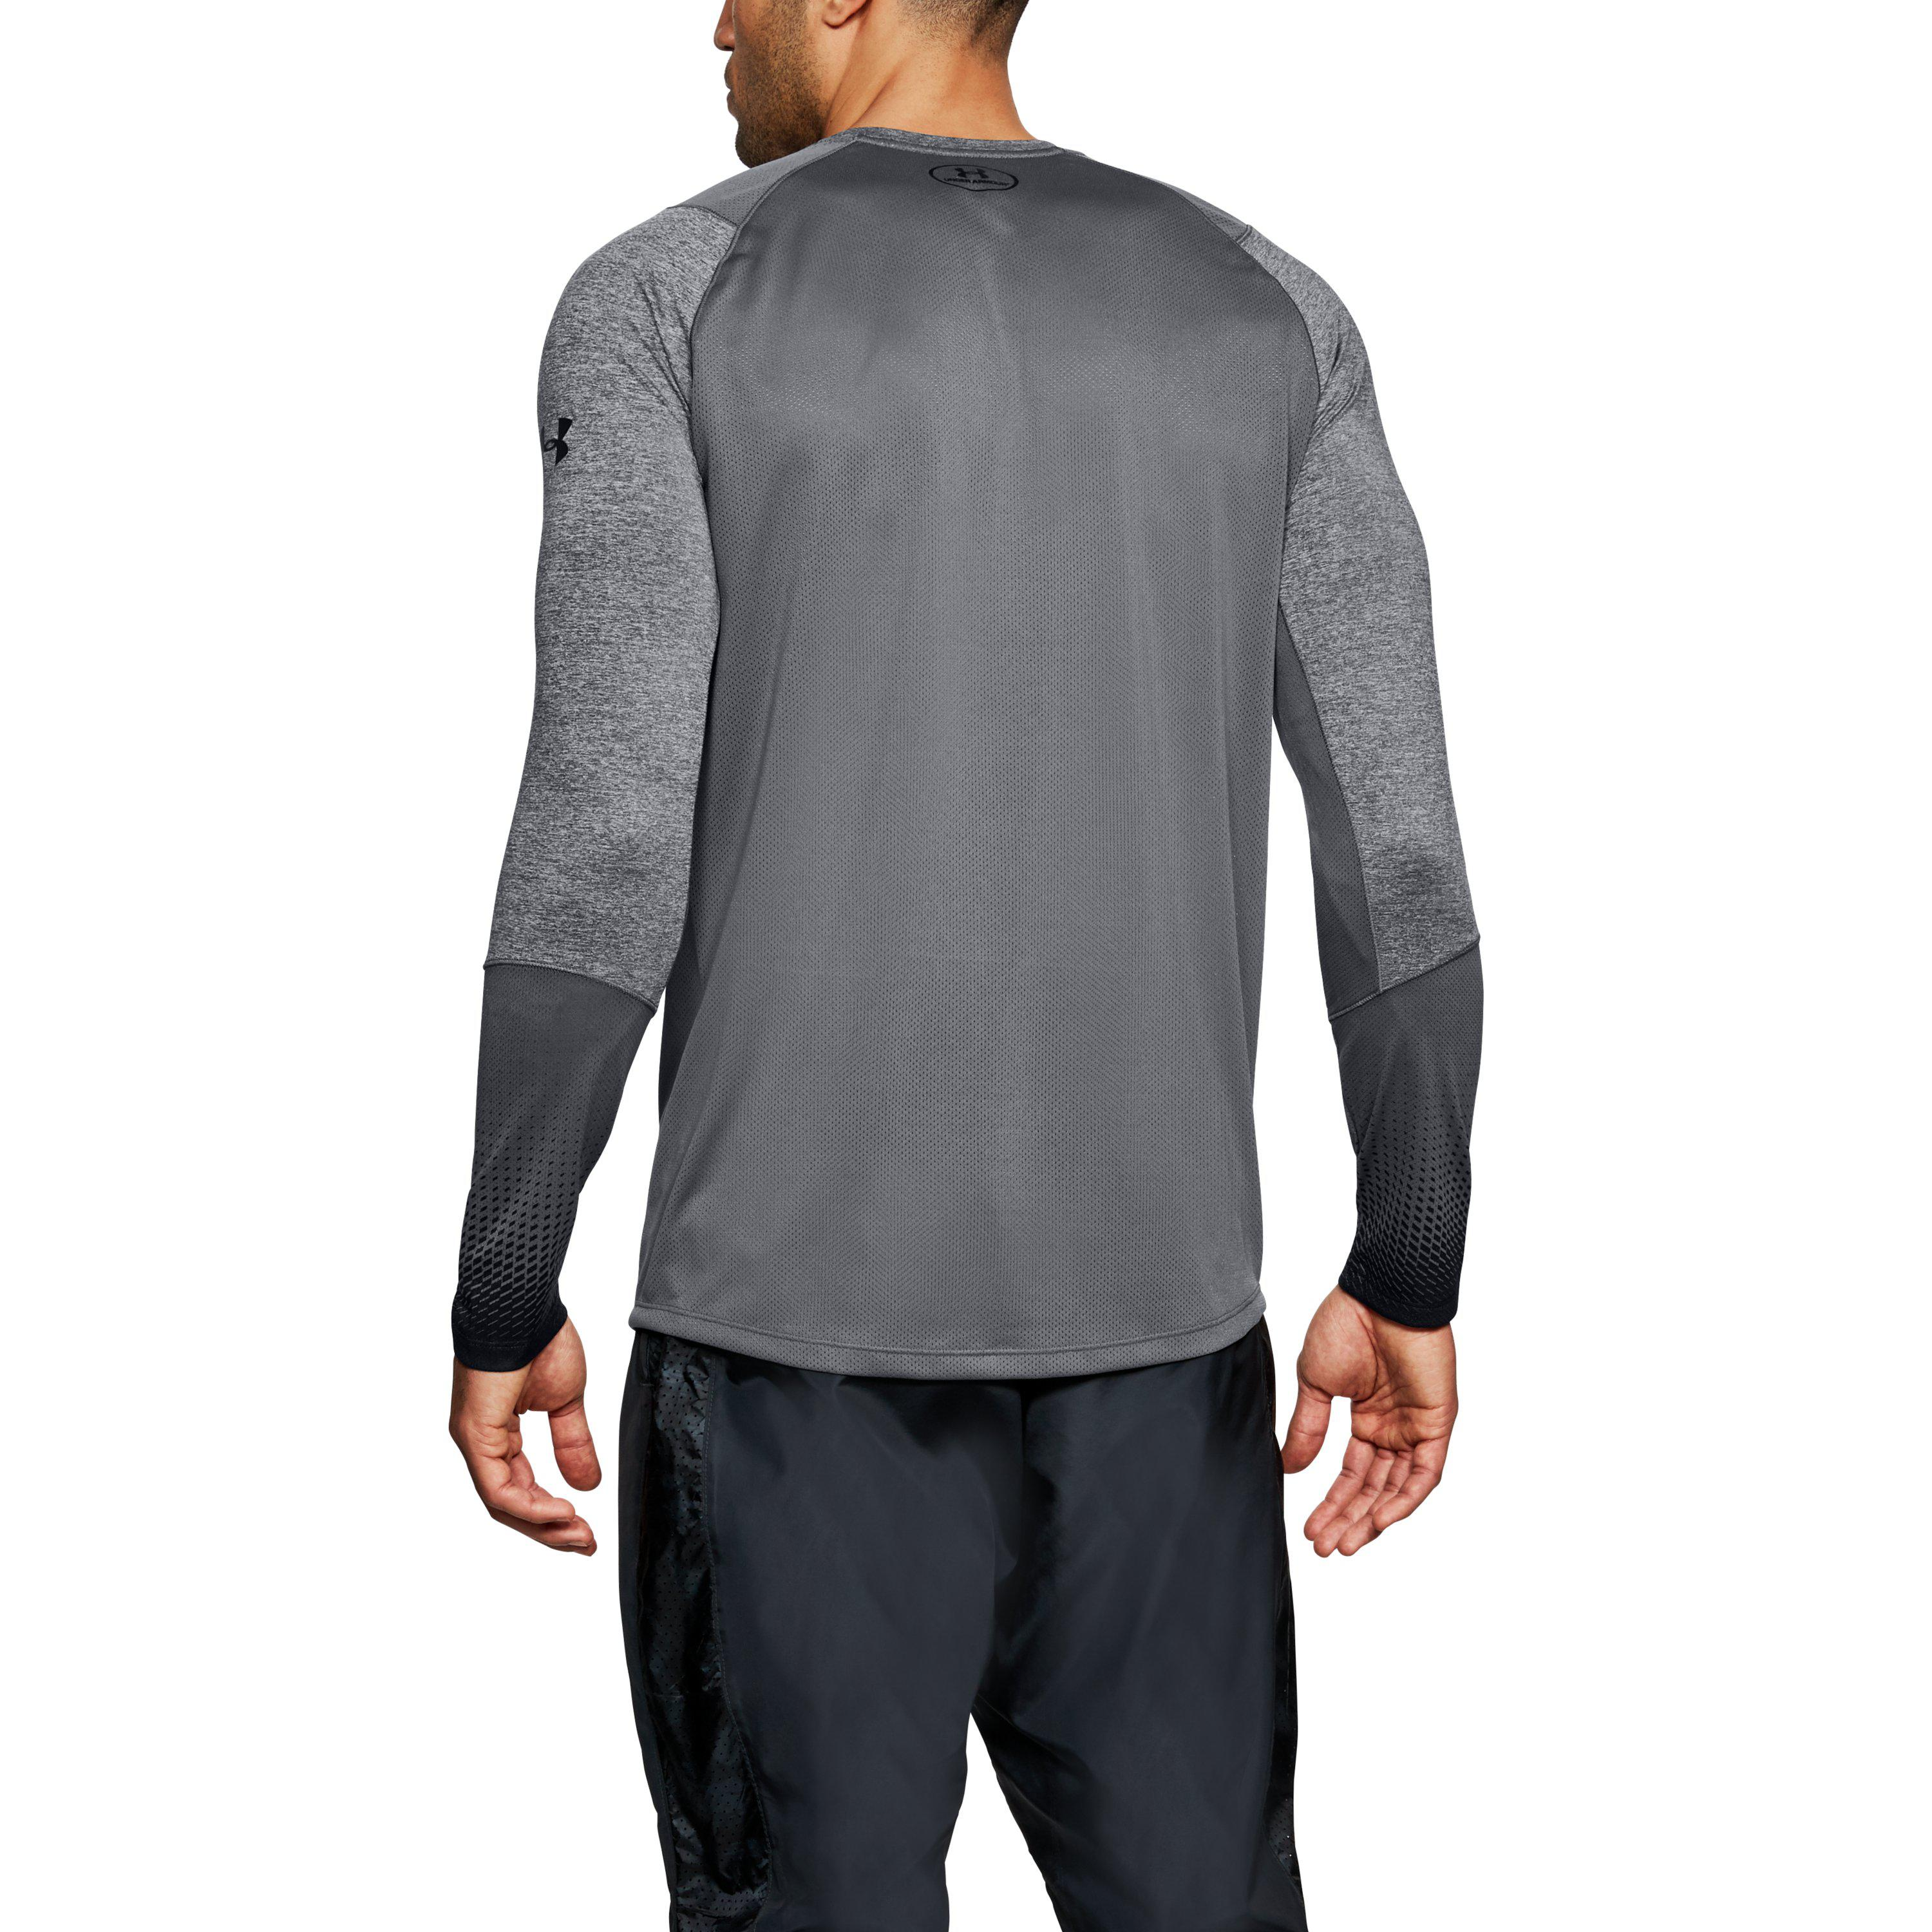 Under Armour Mens MK-1 Long Sleeve Graphic Shirt